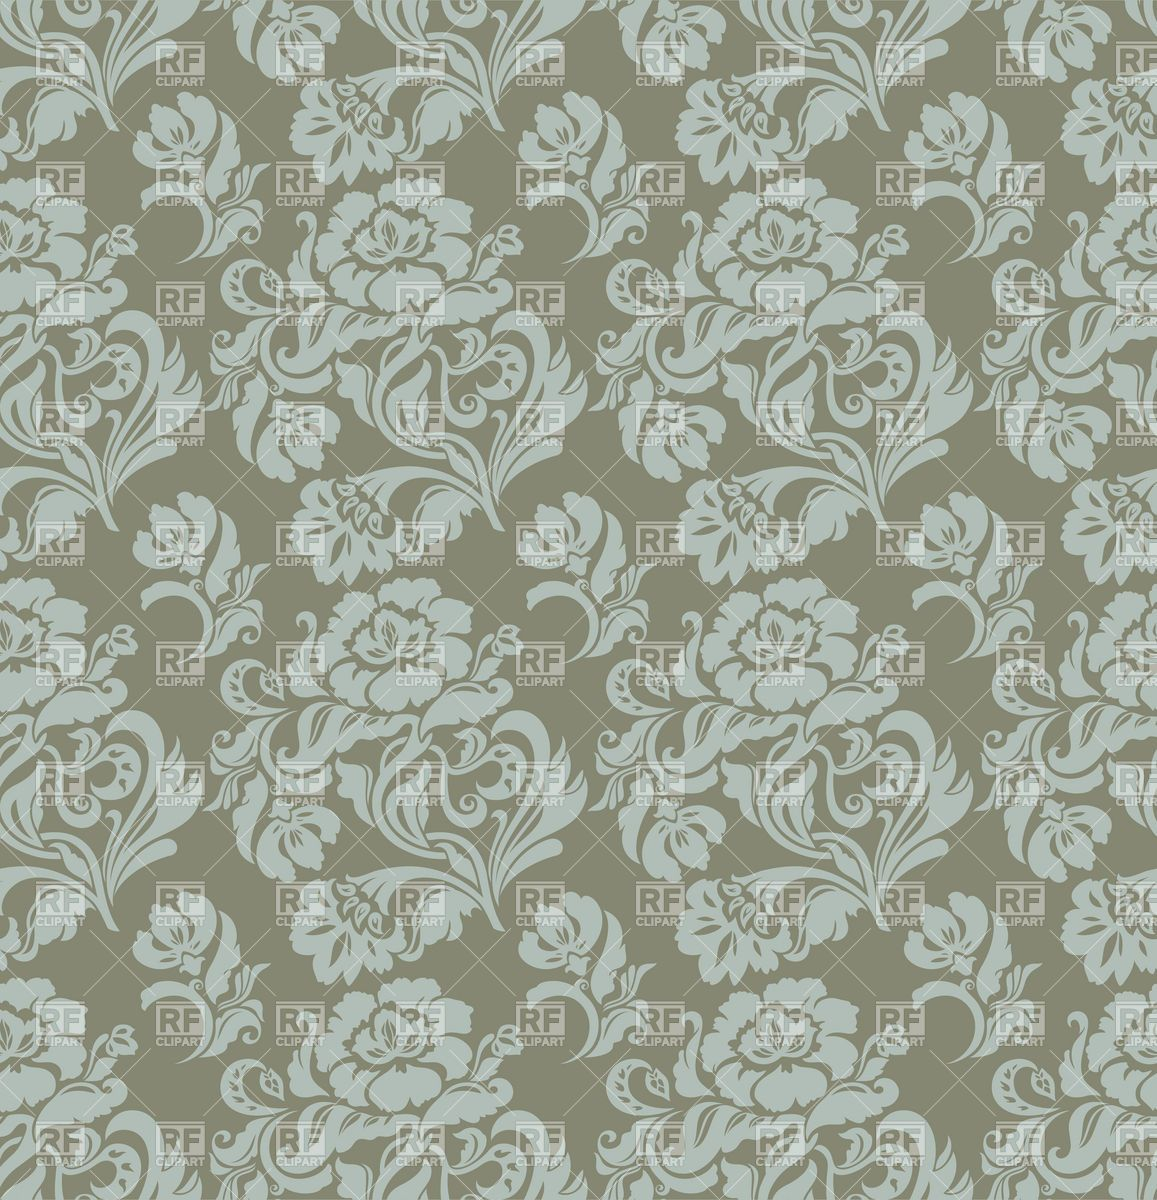 Victorian Floral Wallpaper backgrounds textures abstract